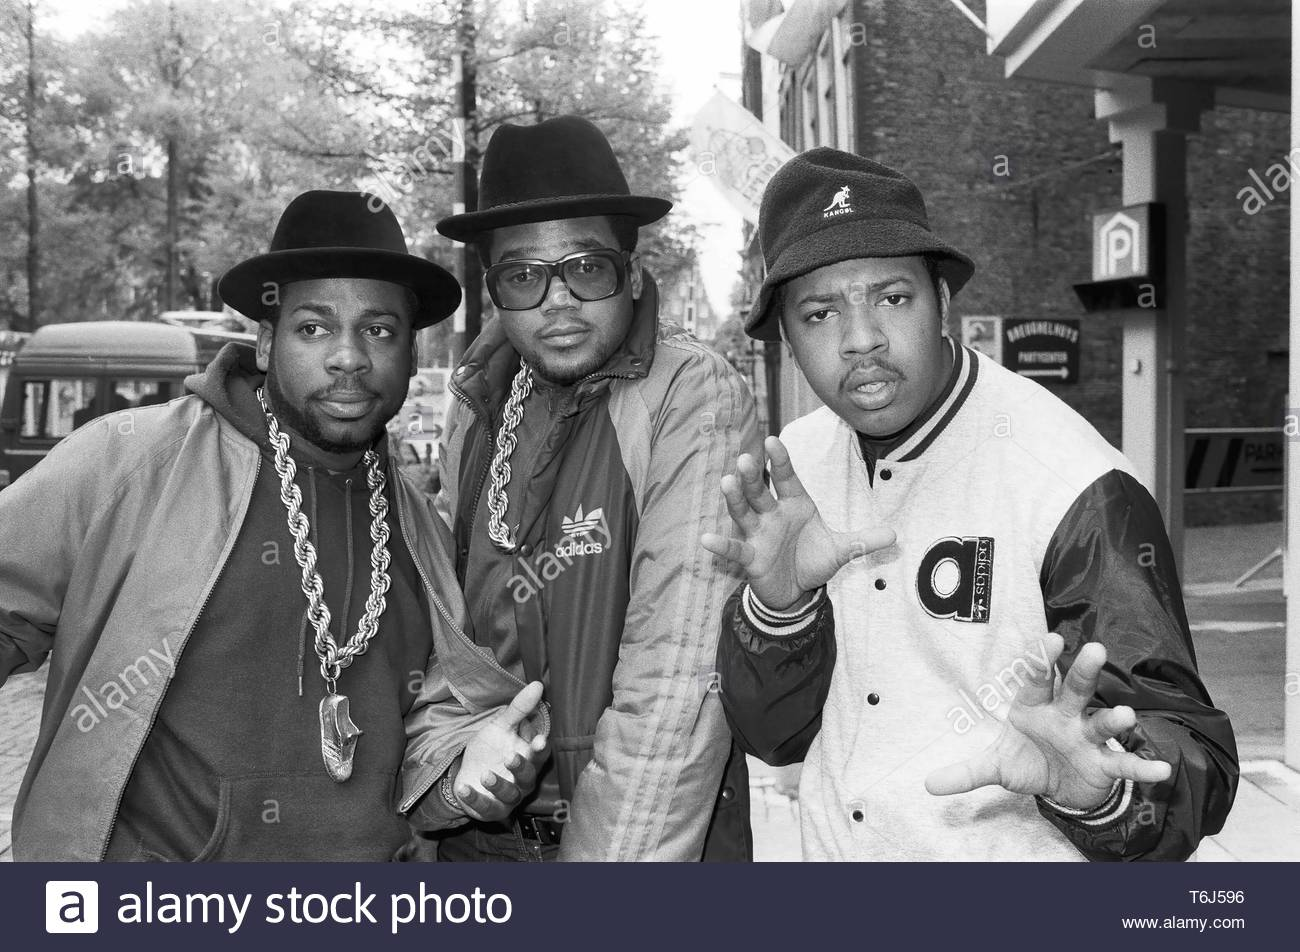 Wright, Nigel-Run-DMC - Stock Image